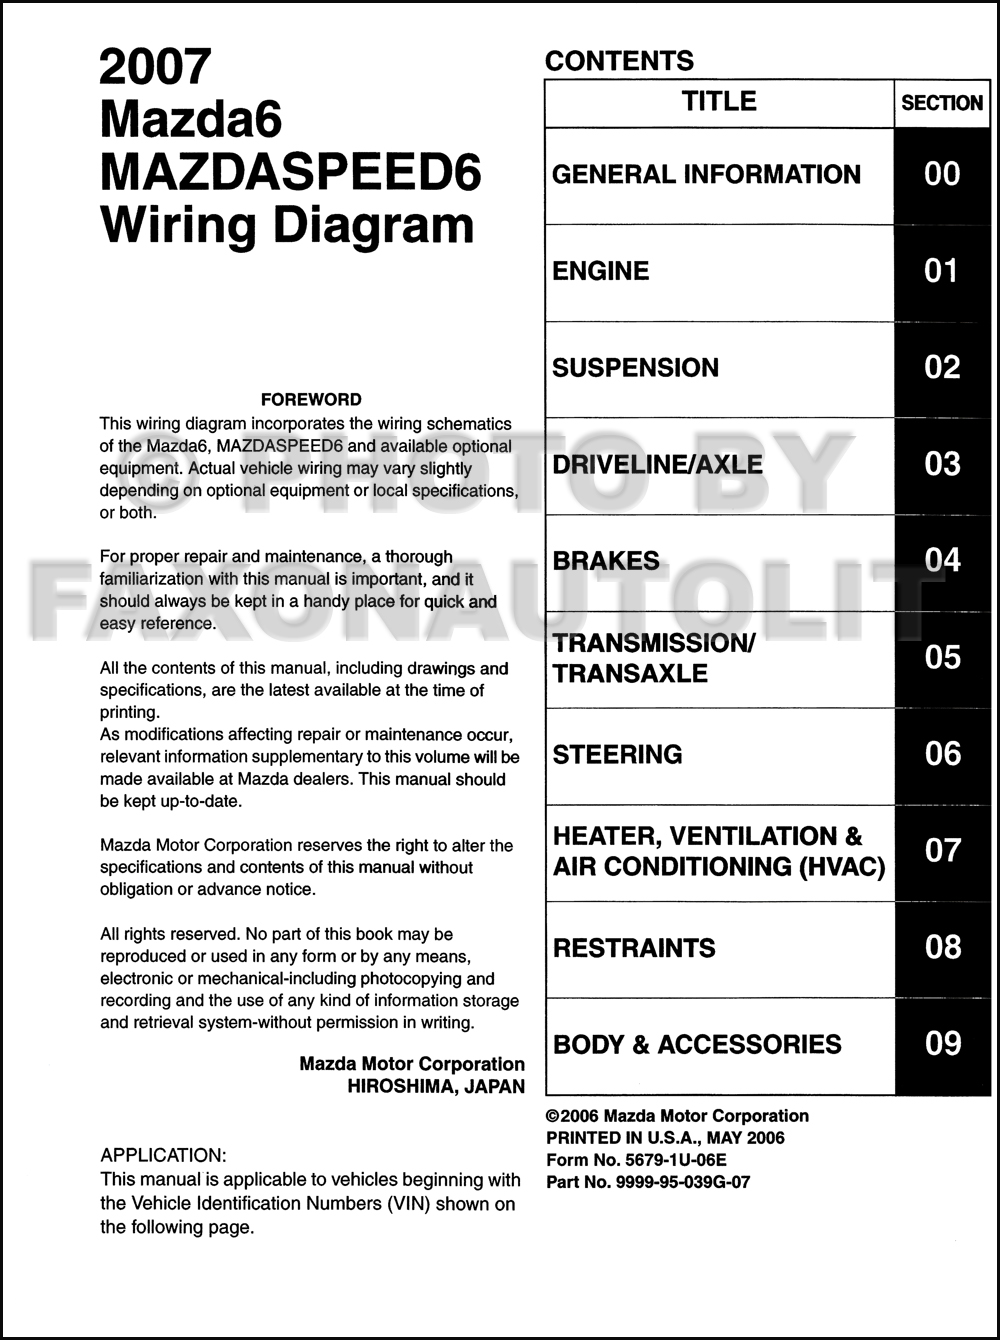 2007 Mazda6 And Mazdaspeed6 Original Wiring Diagram 2009 Mazda 3 Accessory Click On Thumbnail To Zoom